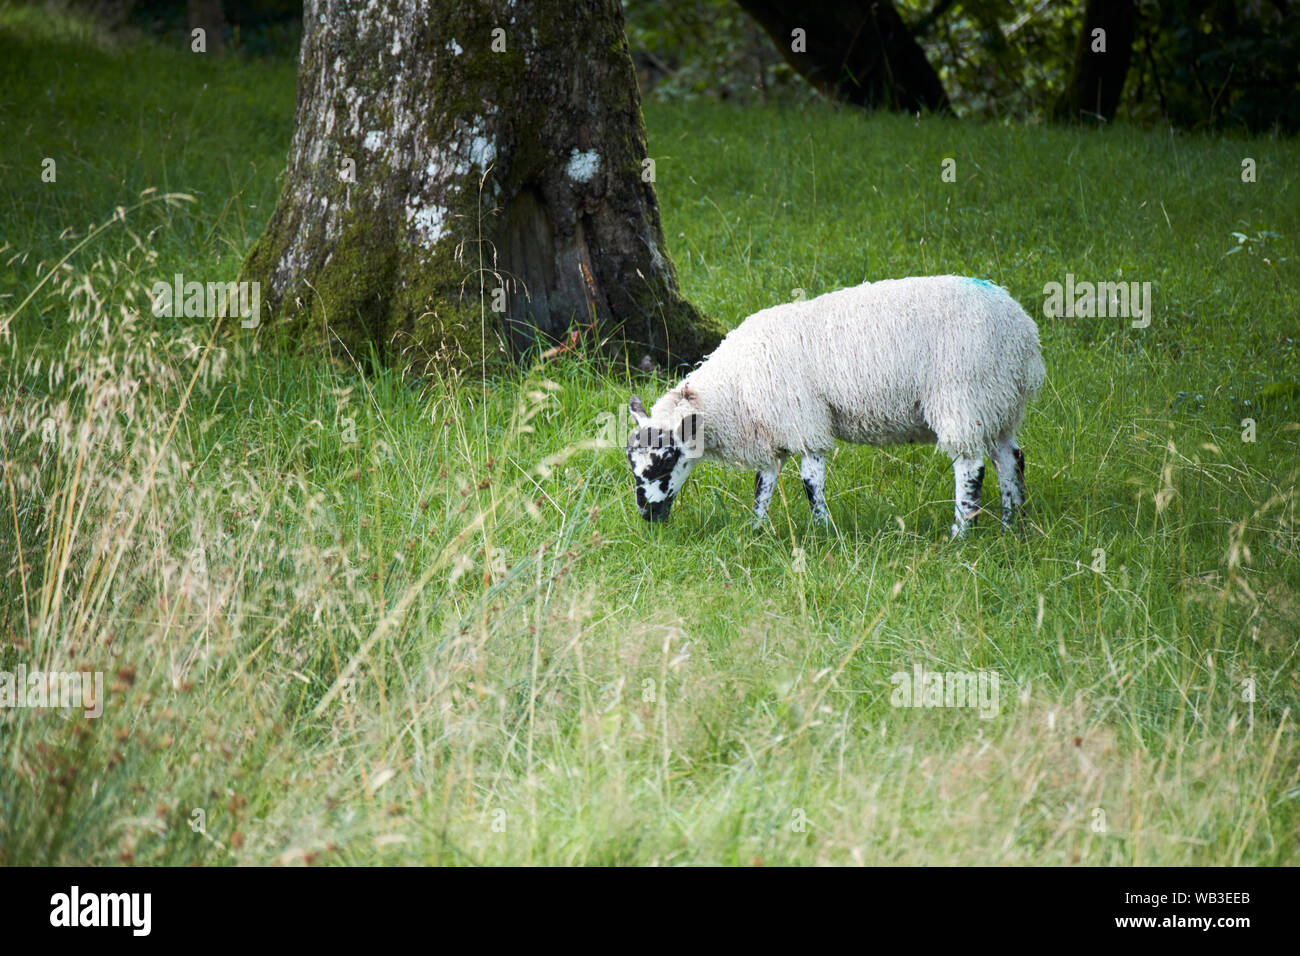 single rough fell sheep grazing in hill country lake district national park, england, uk Stock Photo